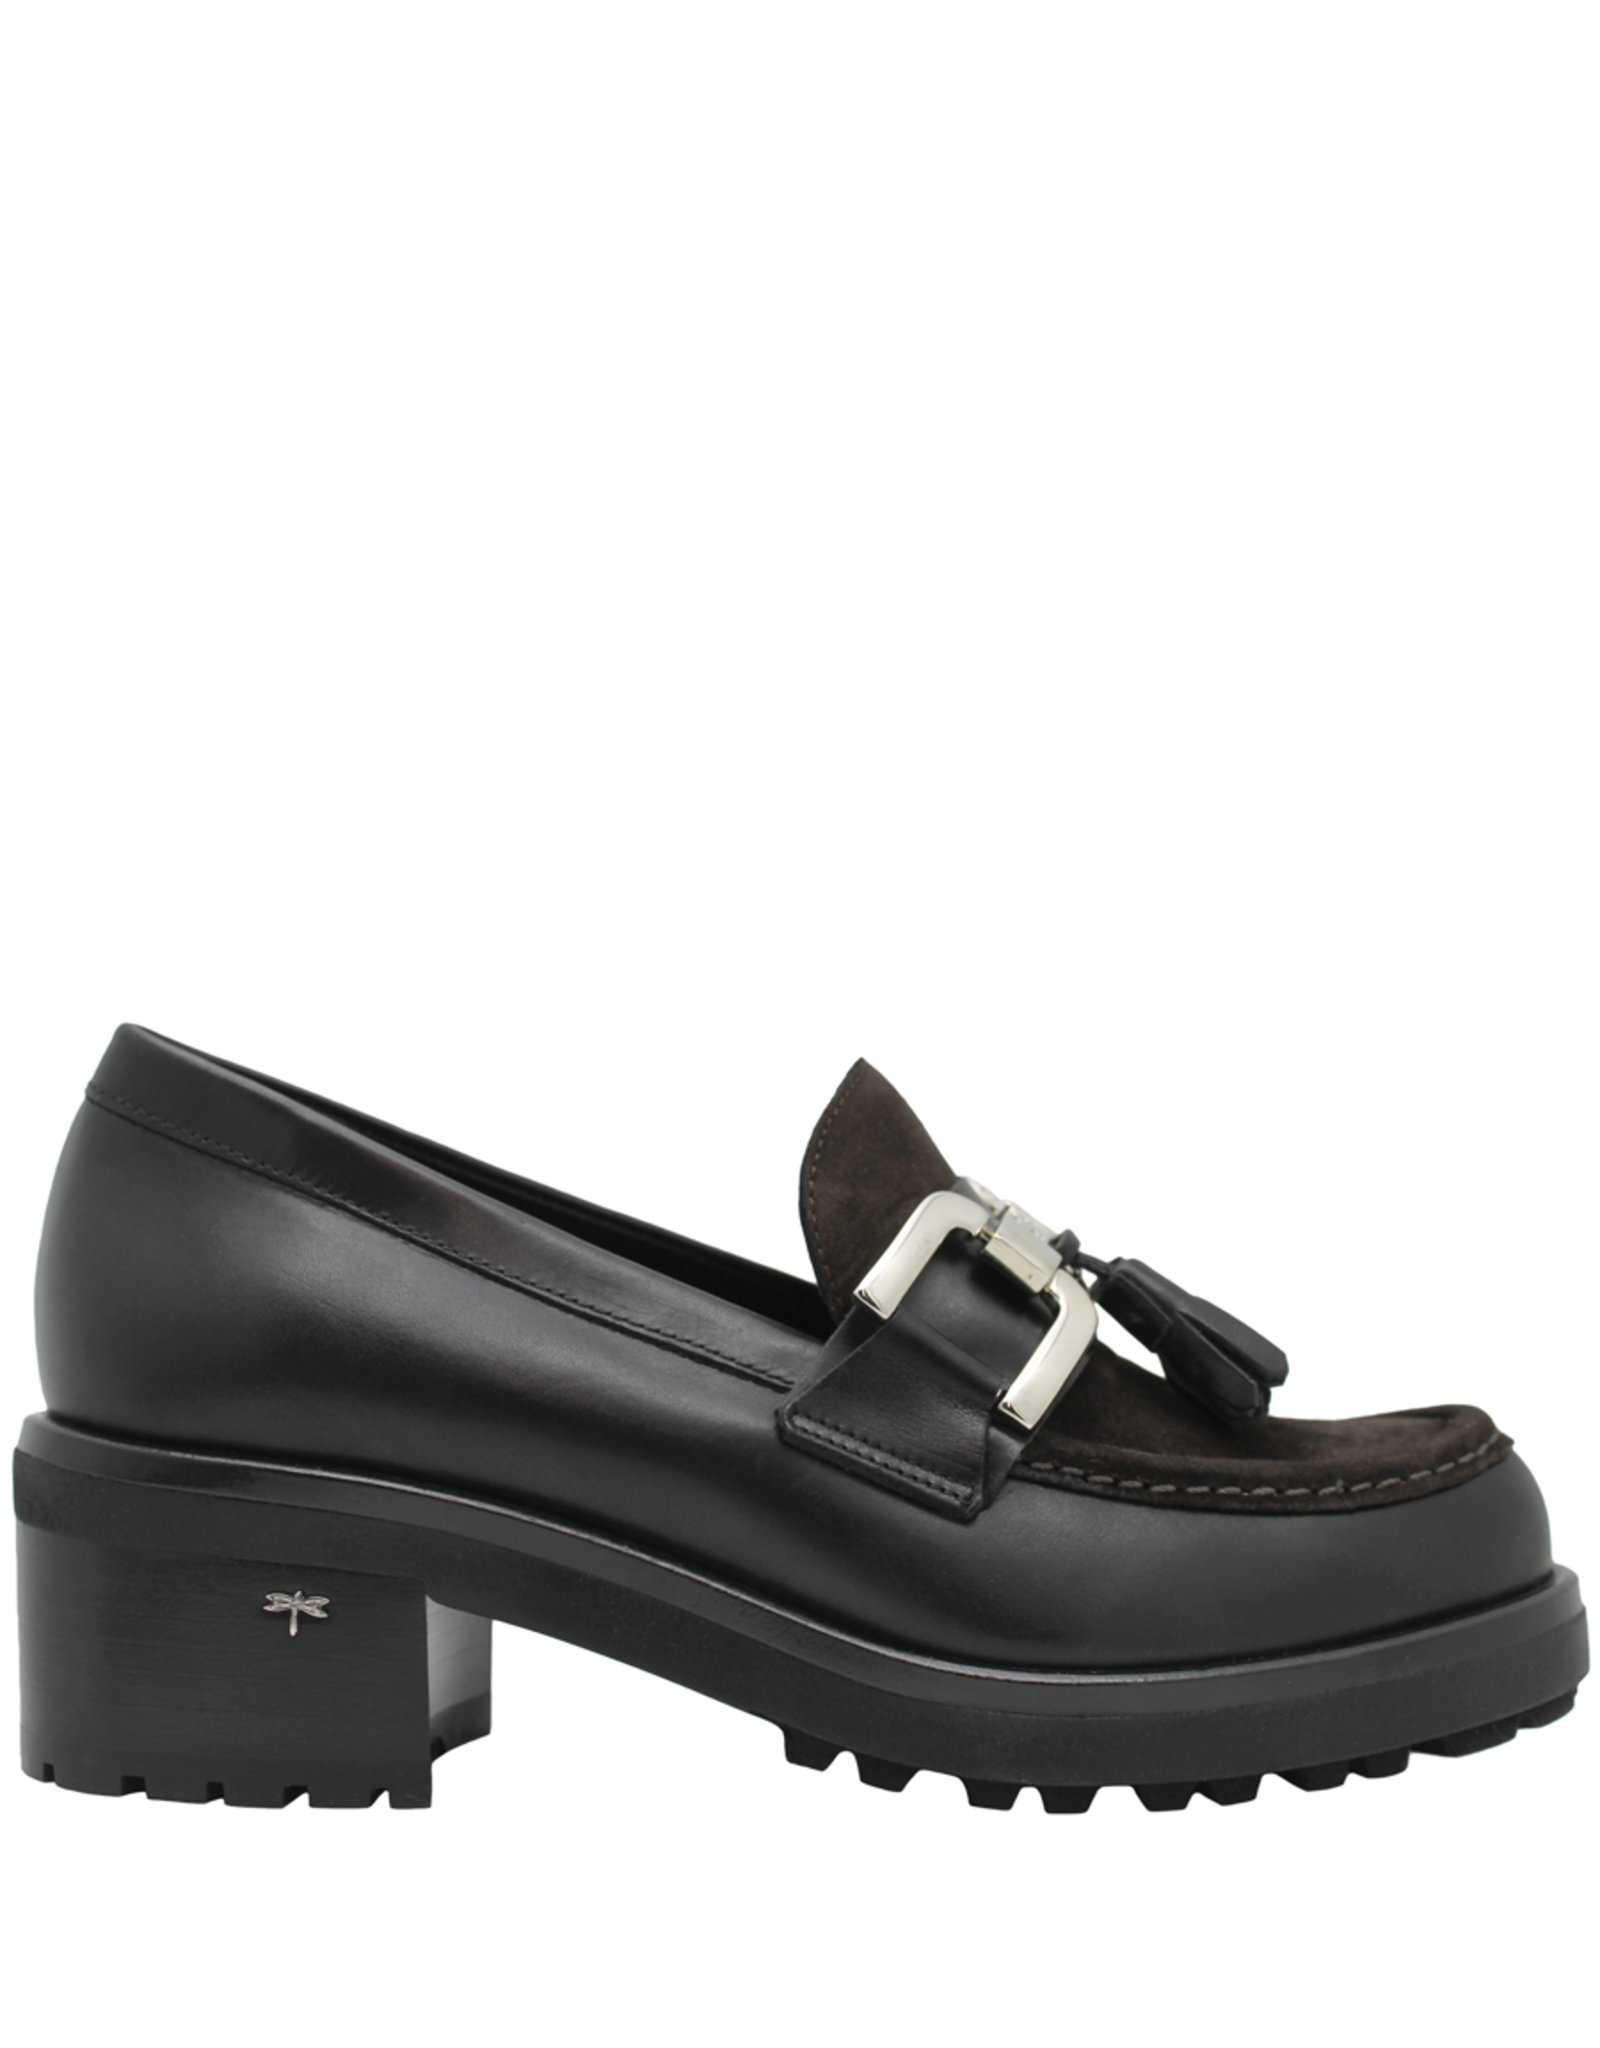 Siton Siton Black With Brown Metal Bit Loafer 1971